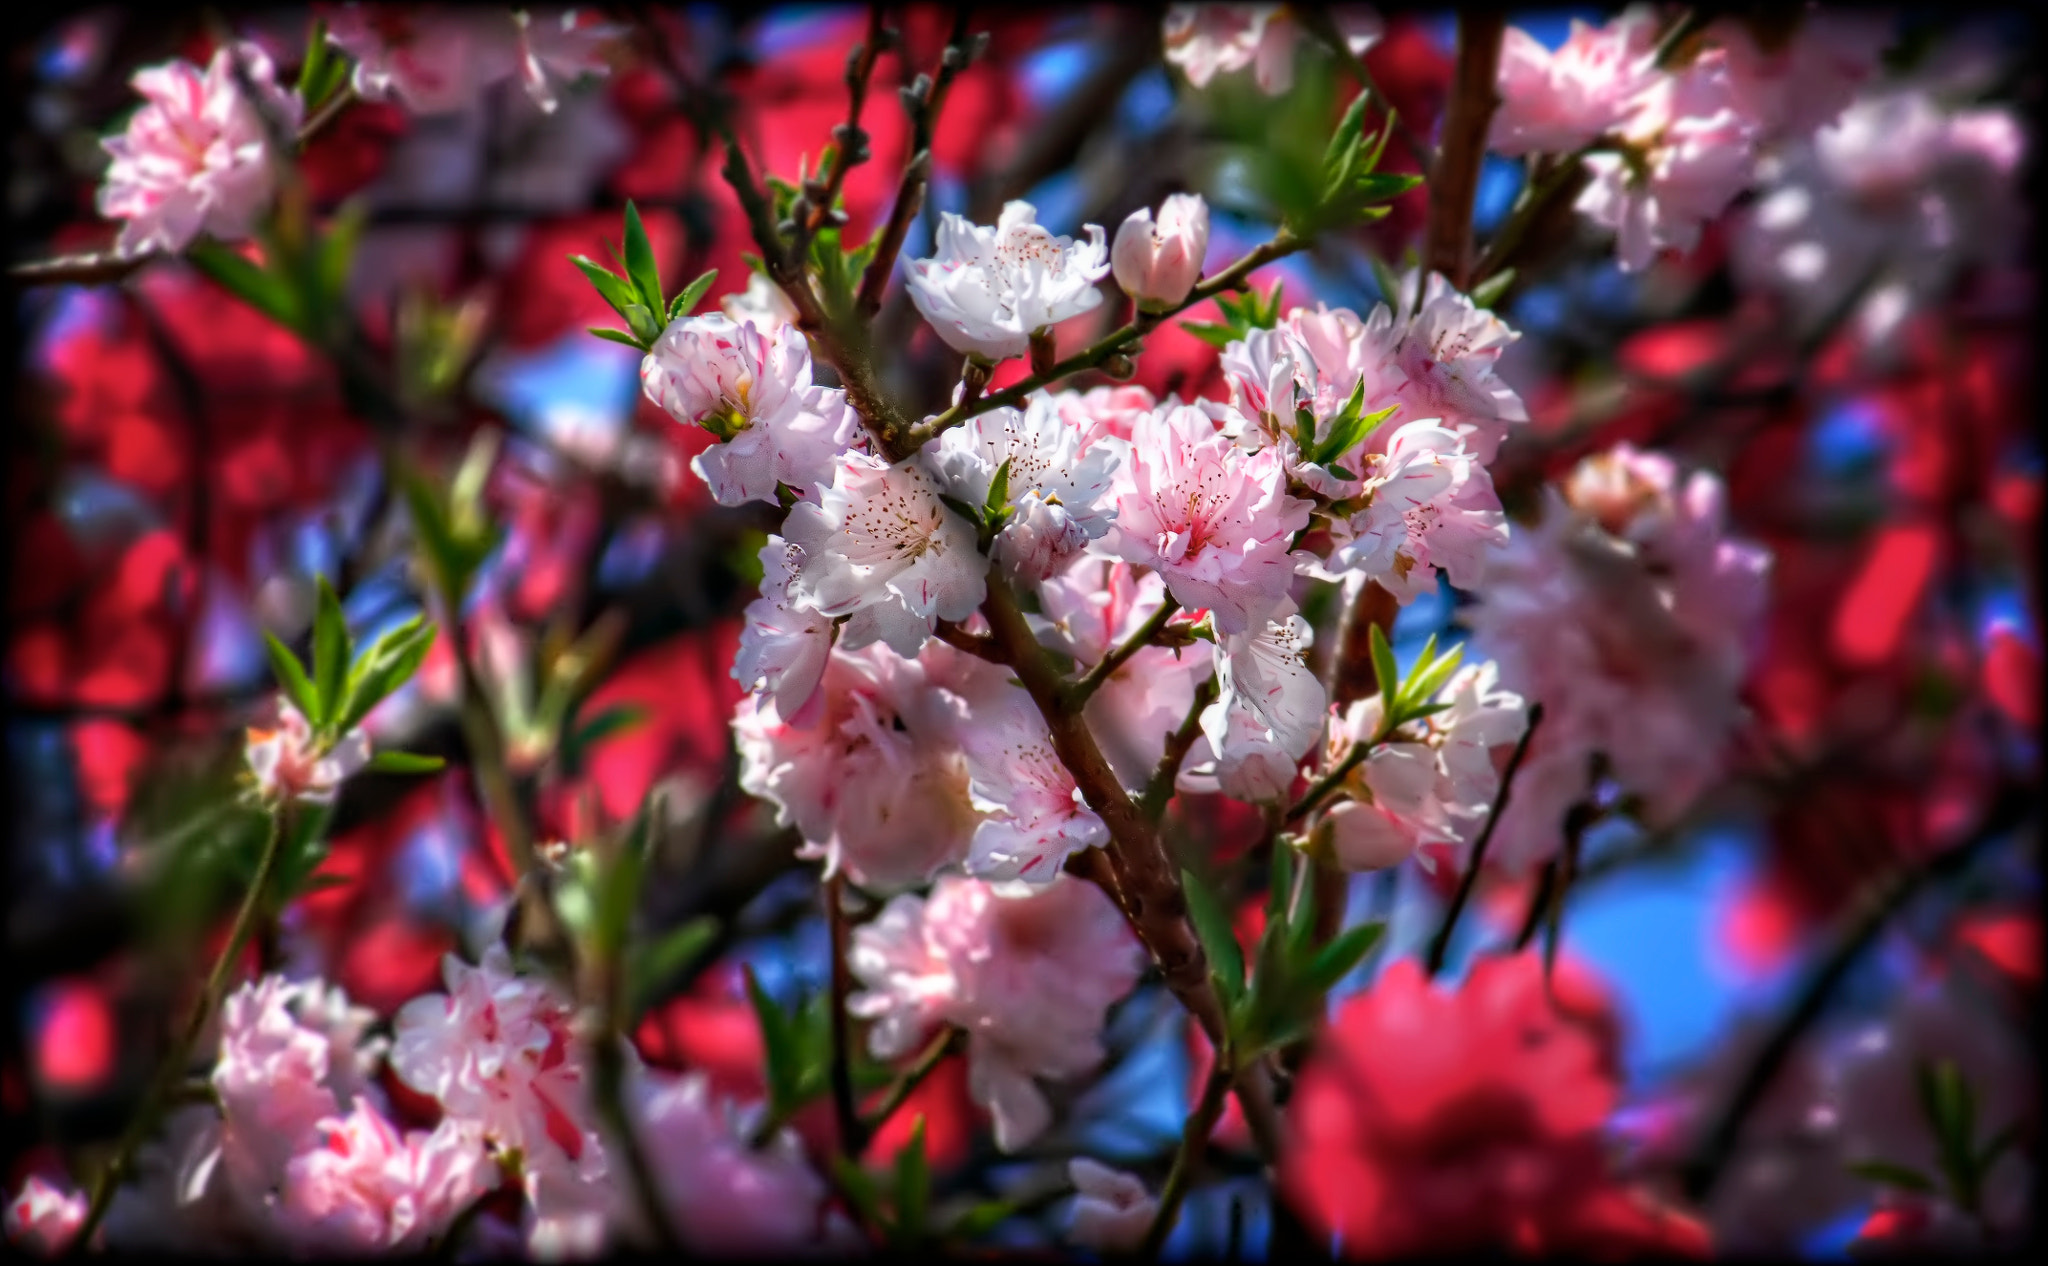 Photograph Red, White, and Pink Sakura by David LaSpina on 500px